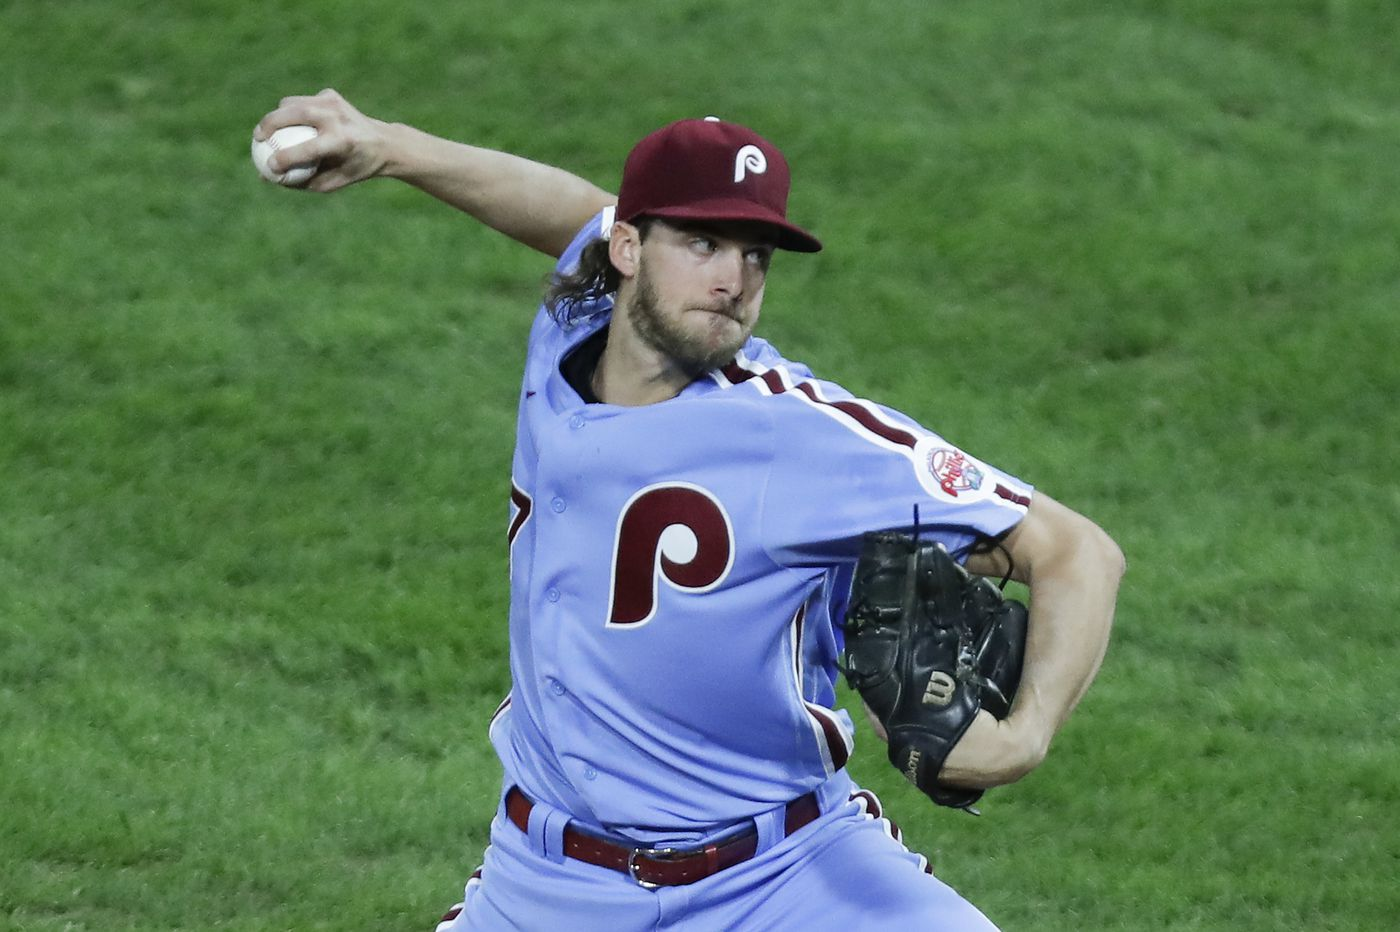 Phillies' faint playoff hopes ride on the arm of Aaron Nola today, and he's faltered in Septembers past